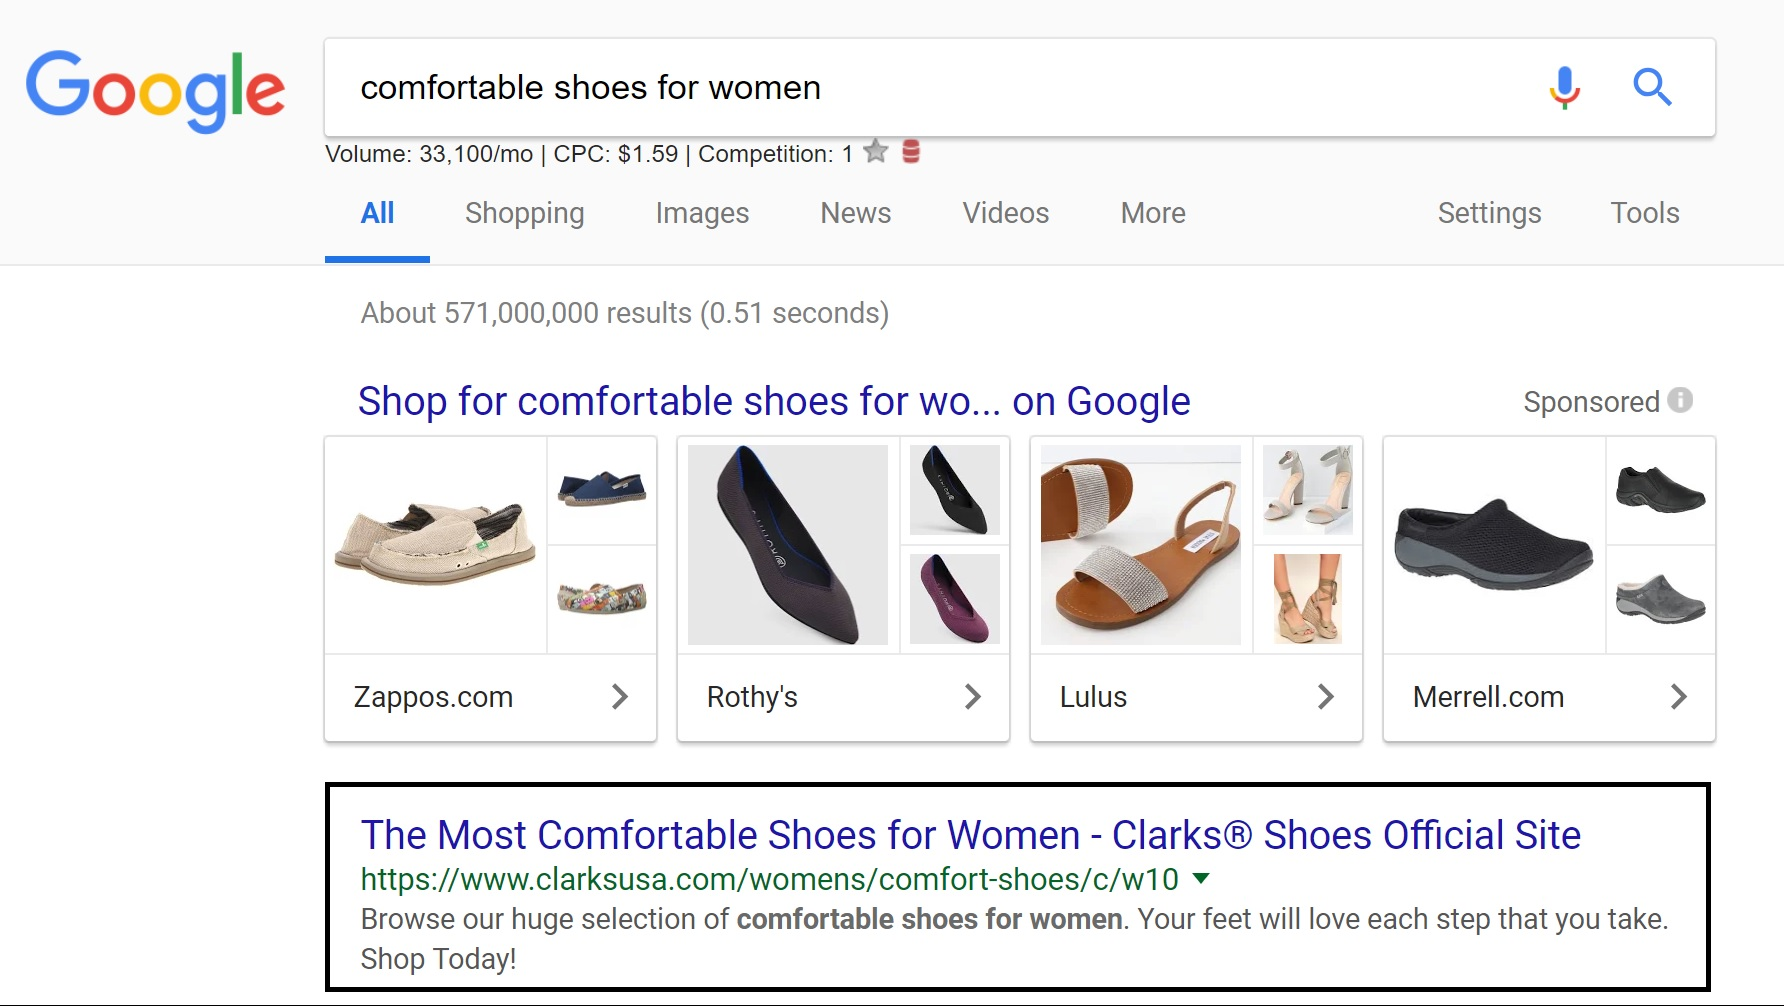 Ranking Comfortable Shoes for Women at the Top of Google